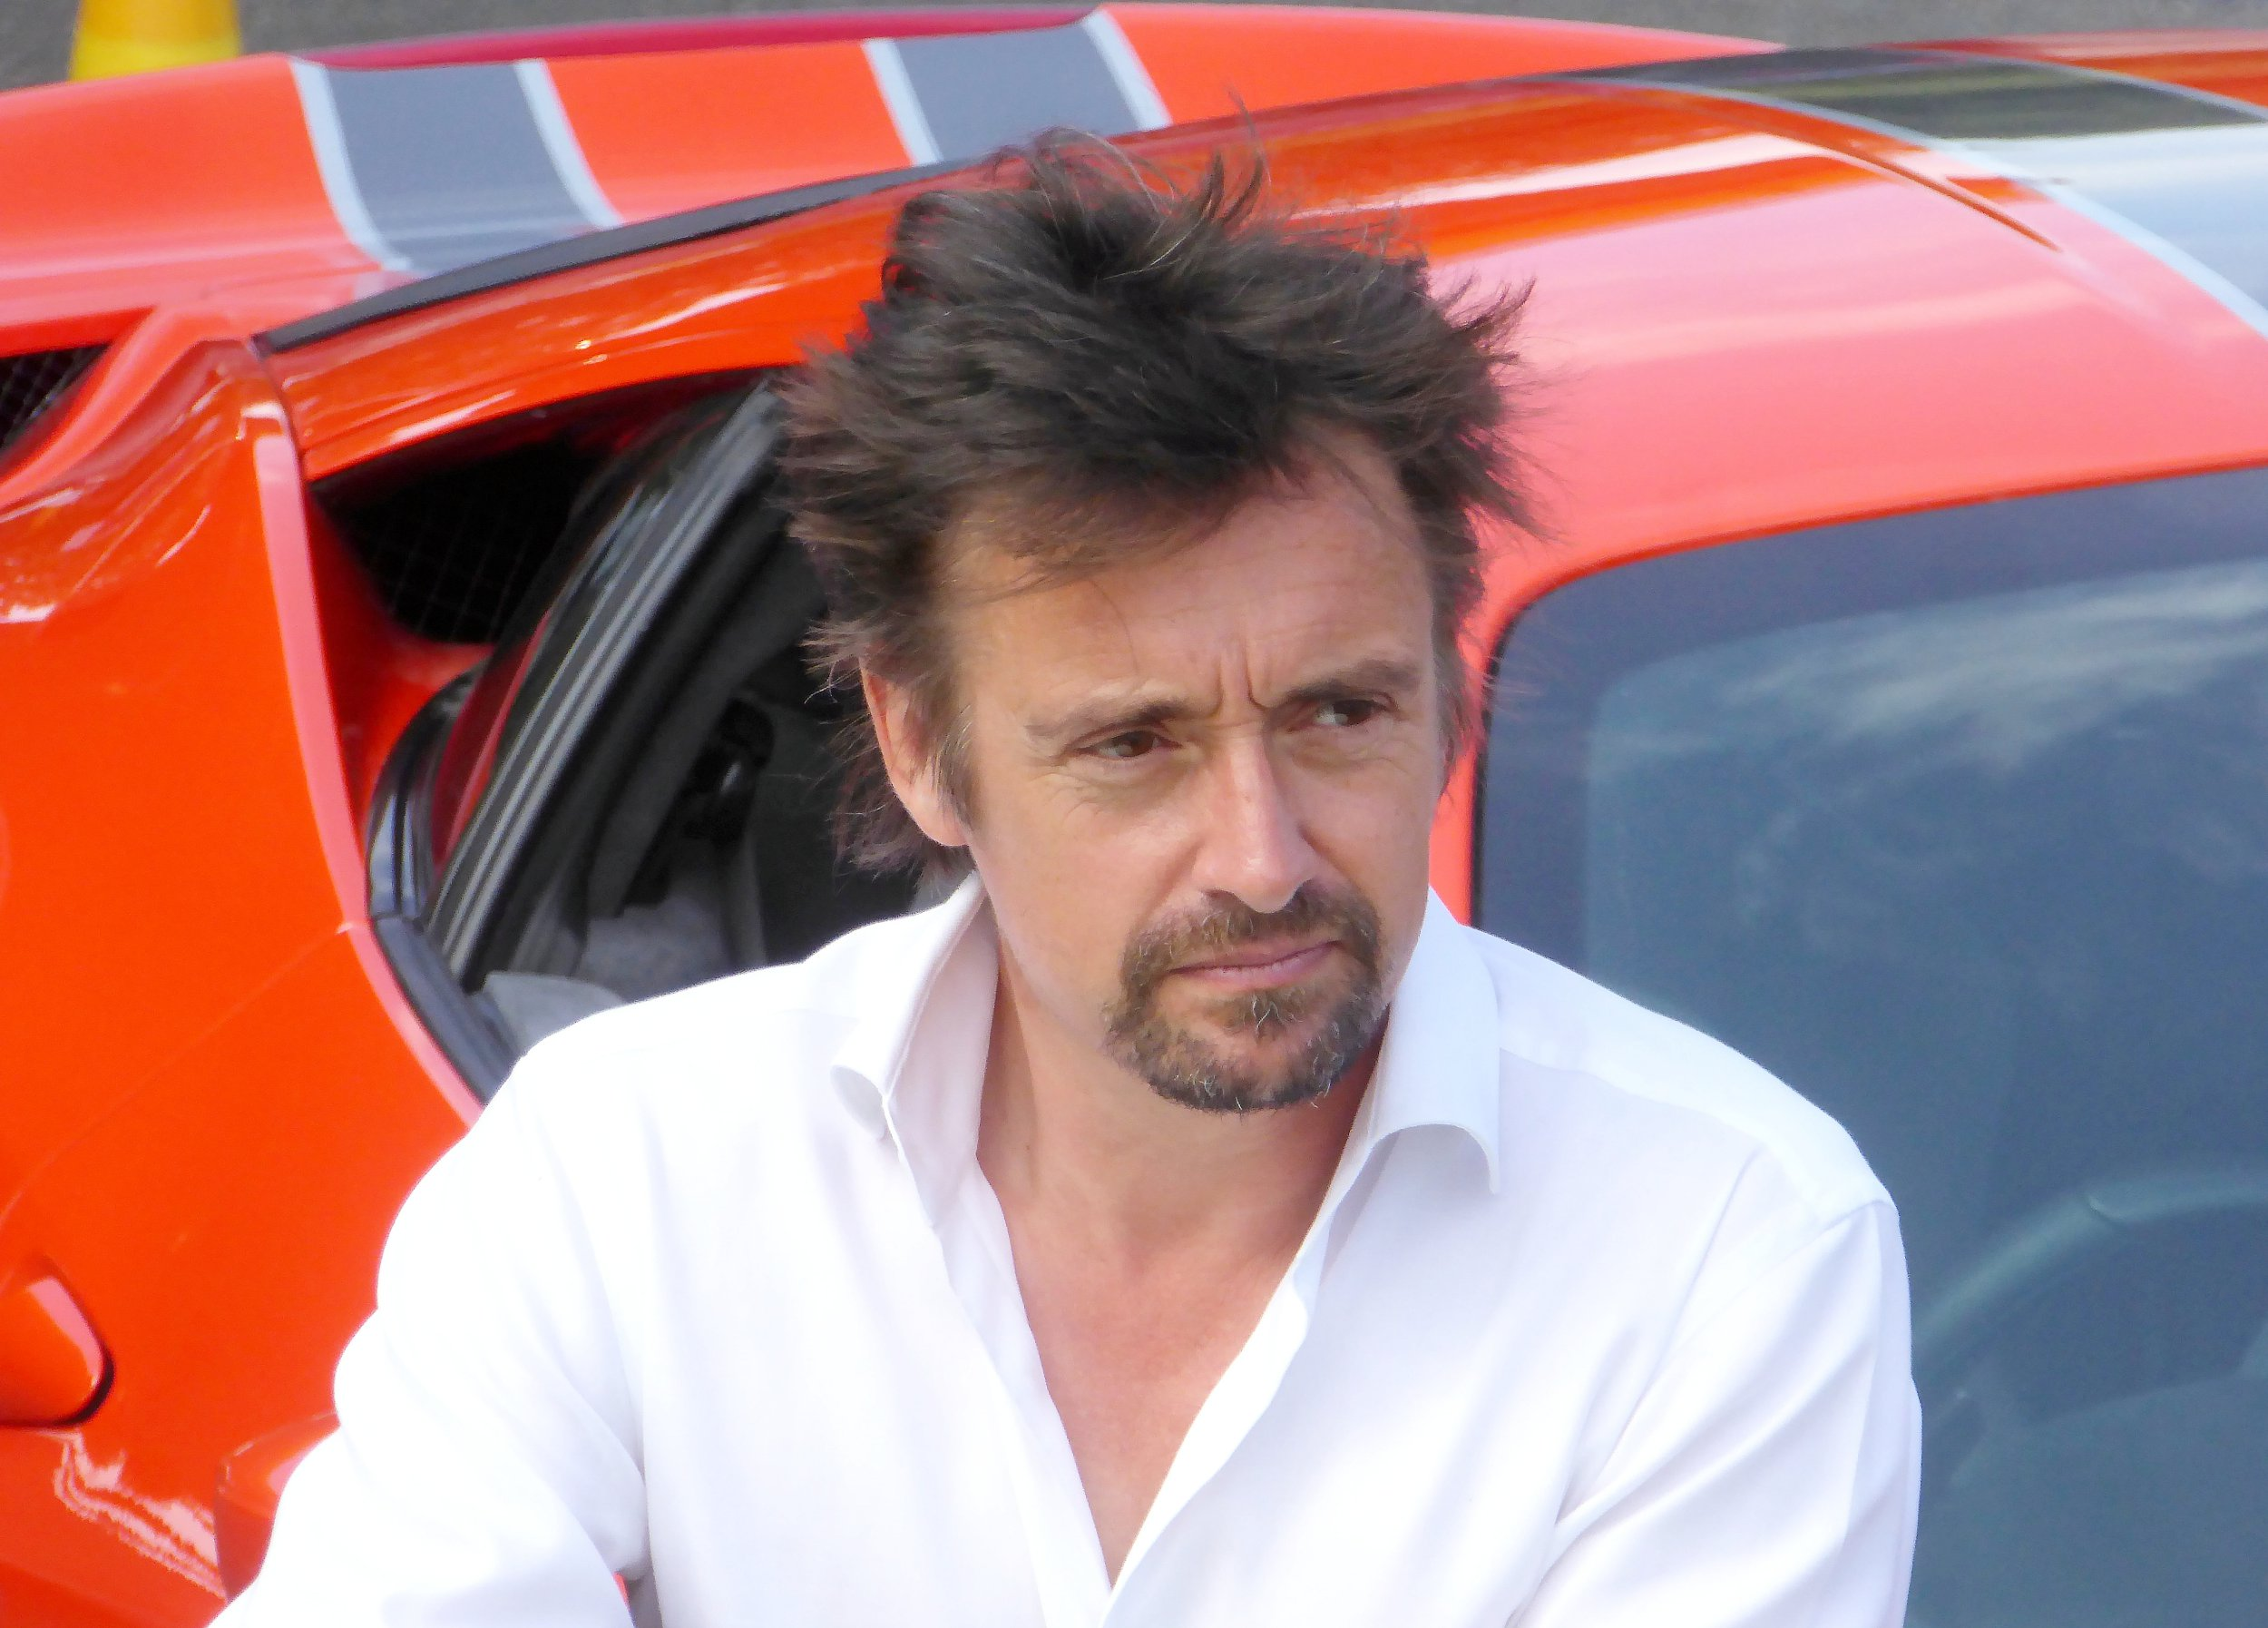 The Grand Tour's Richard Hammond claims he is a 'cautious' driver despite near-death crashes